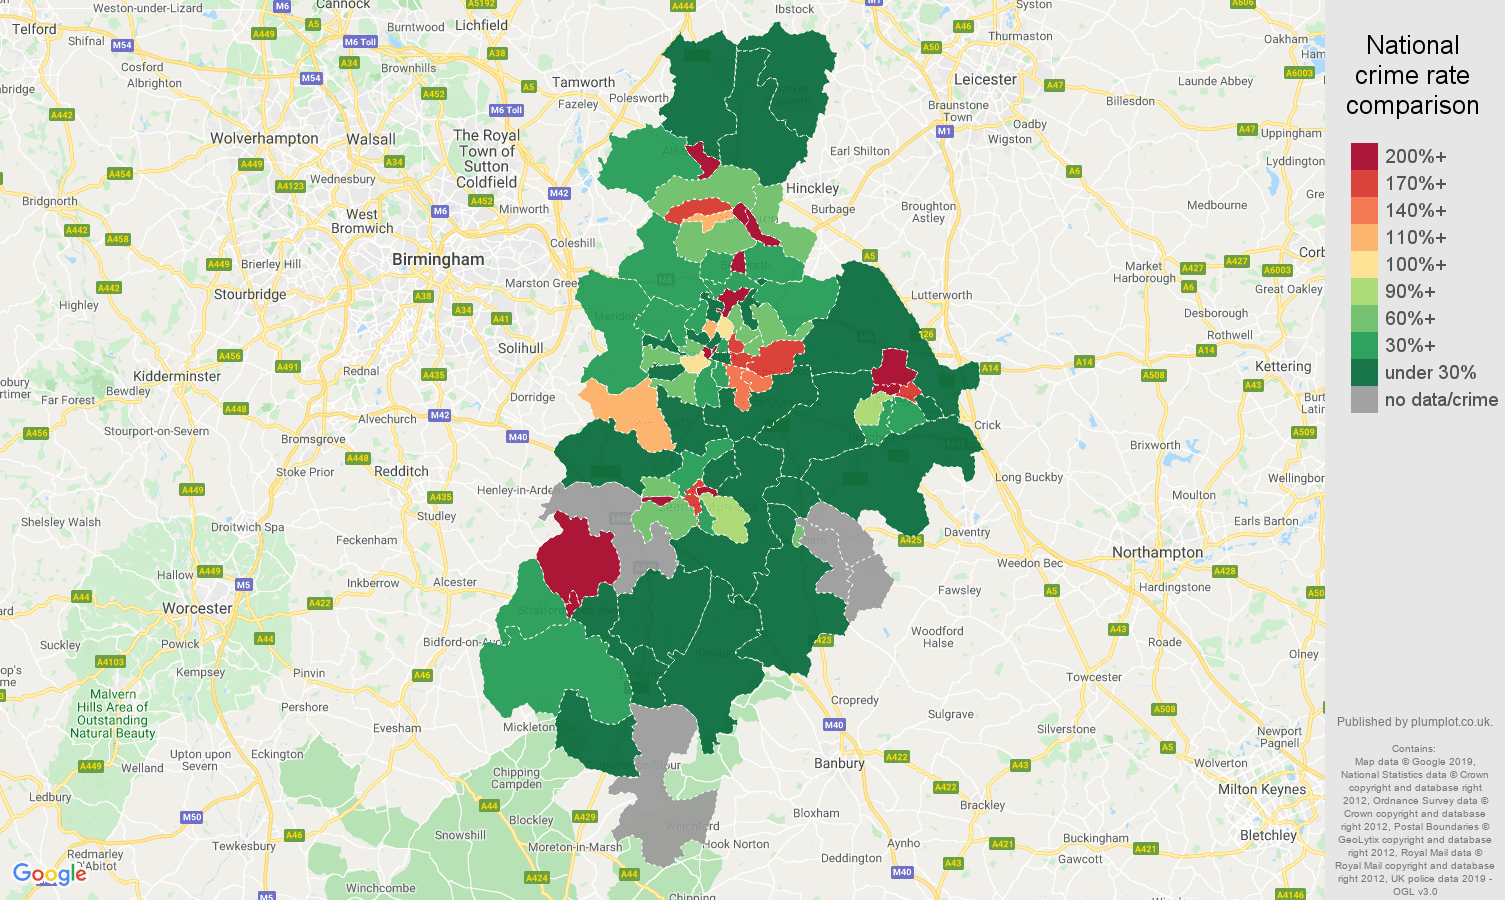 Coventry shoplifting crime rate comparison map